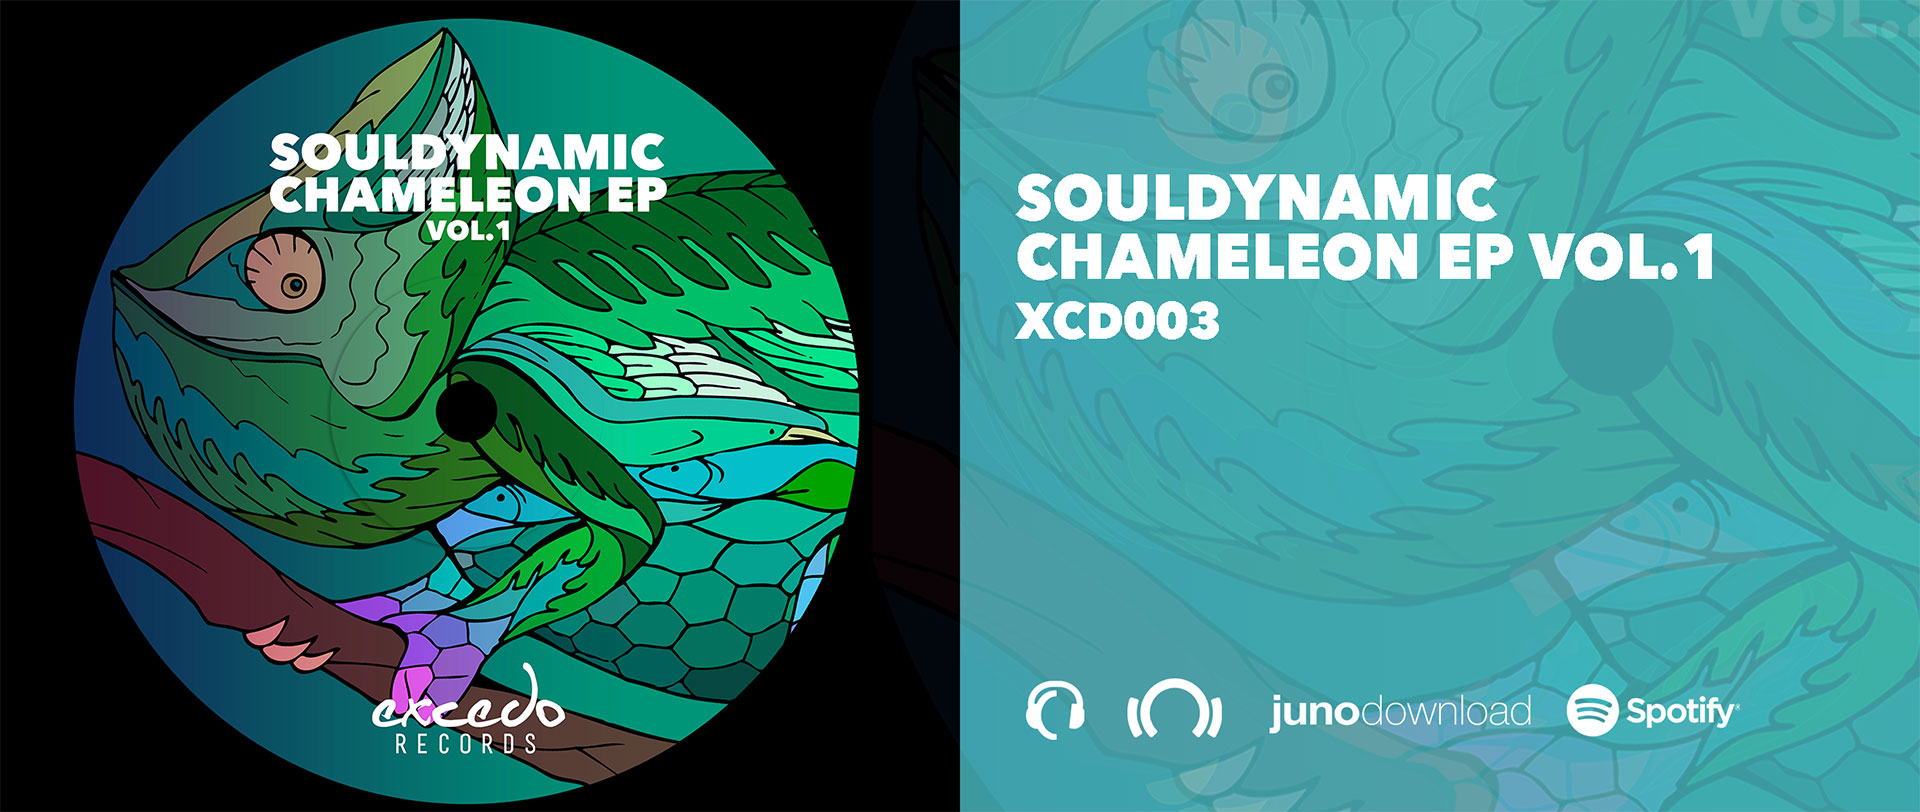 Chameleon EP Vol.1 OUT NOW!